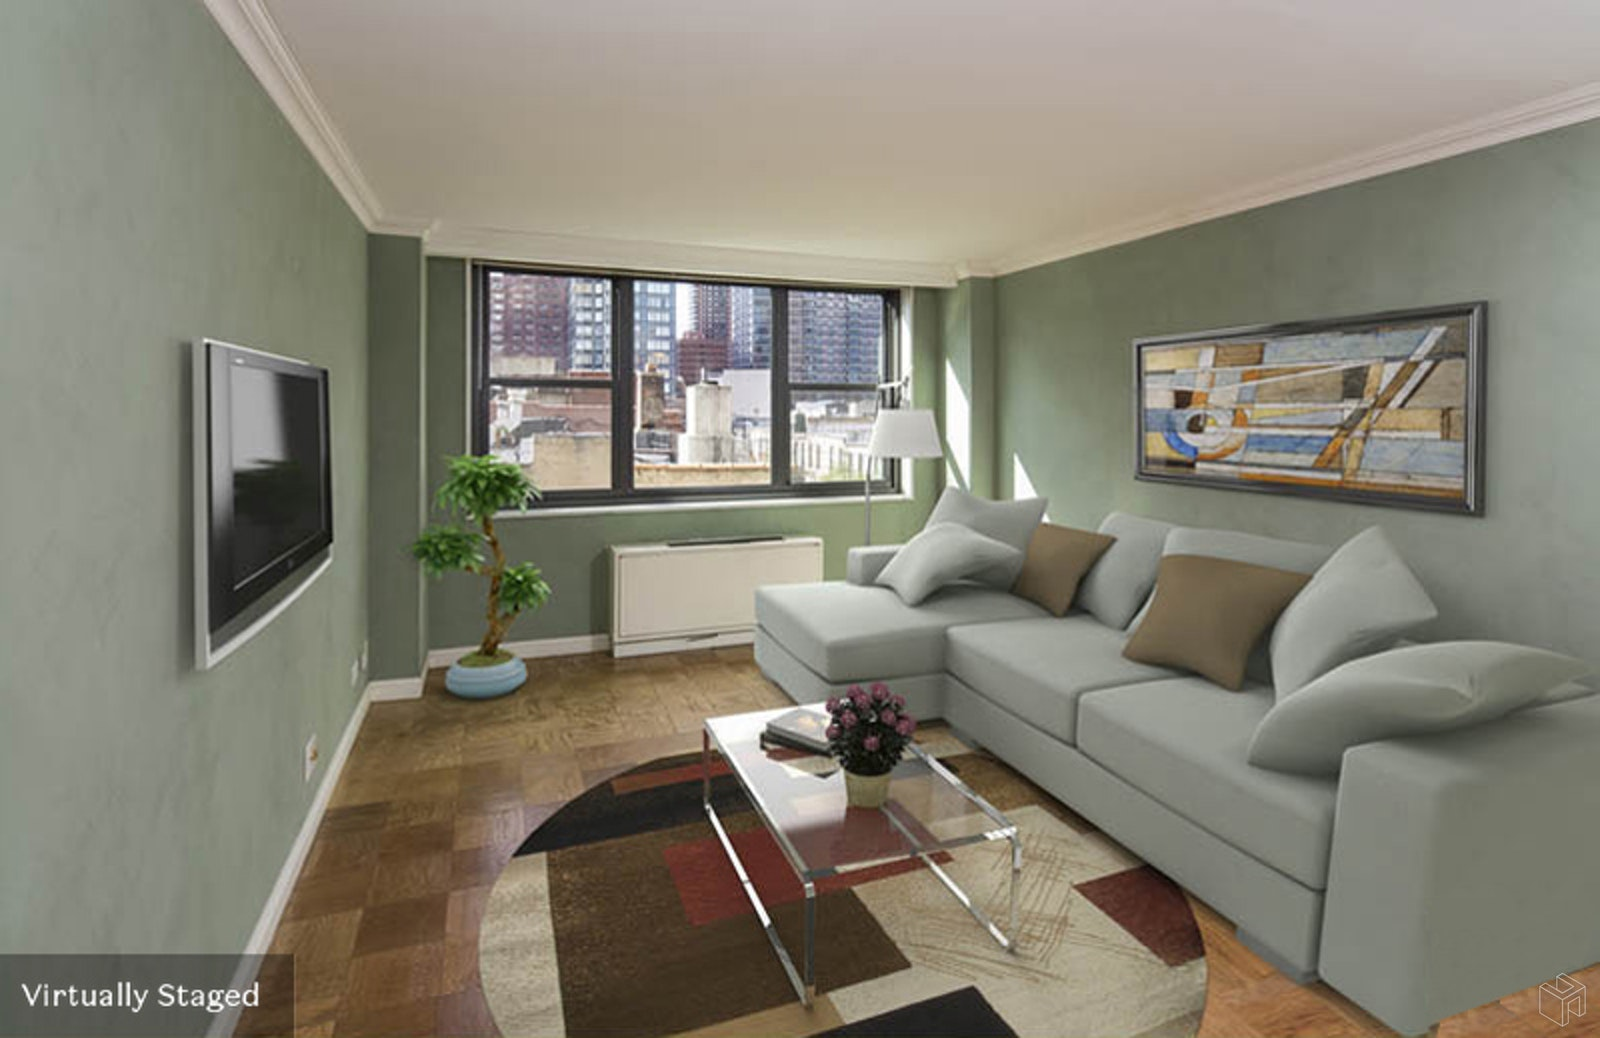 340 East 93rd Street 7k, Upper East Side, NYC, 10128, $654,500, Sold Property, Halstead Real Estate, Photo 1